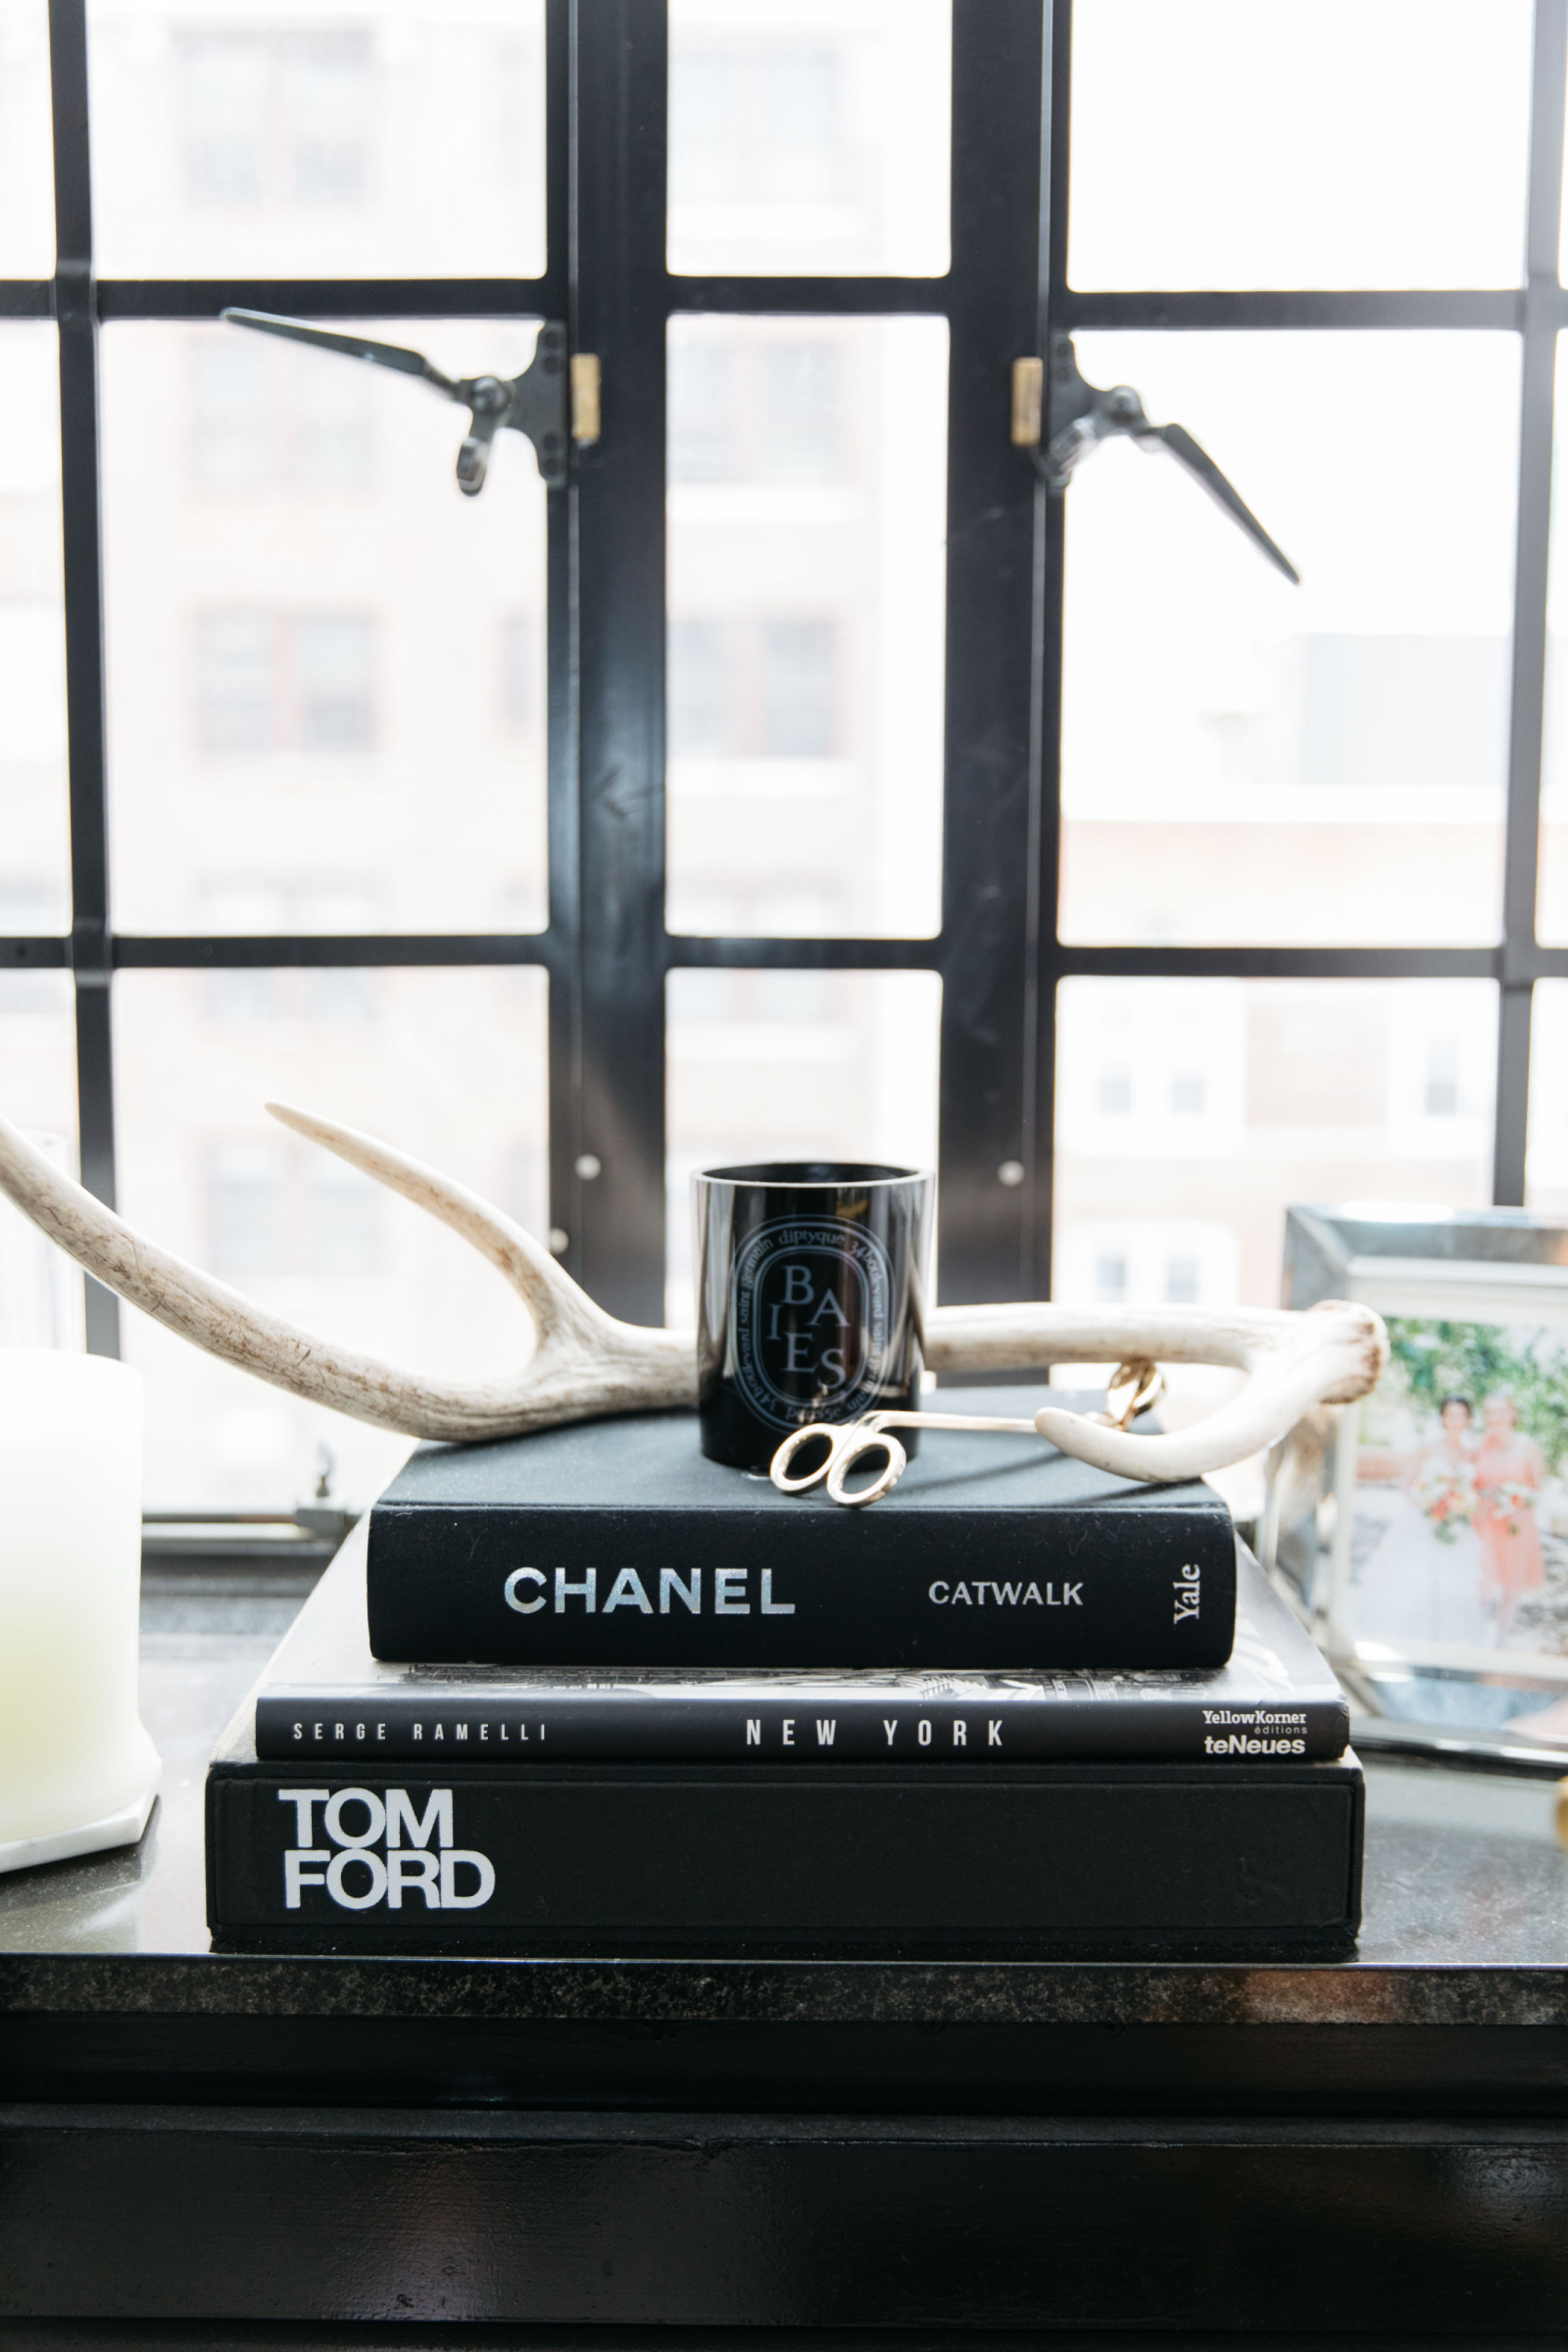 Chic Coffee Table Books | My Coffee Table Book Collection